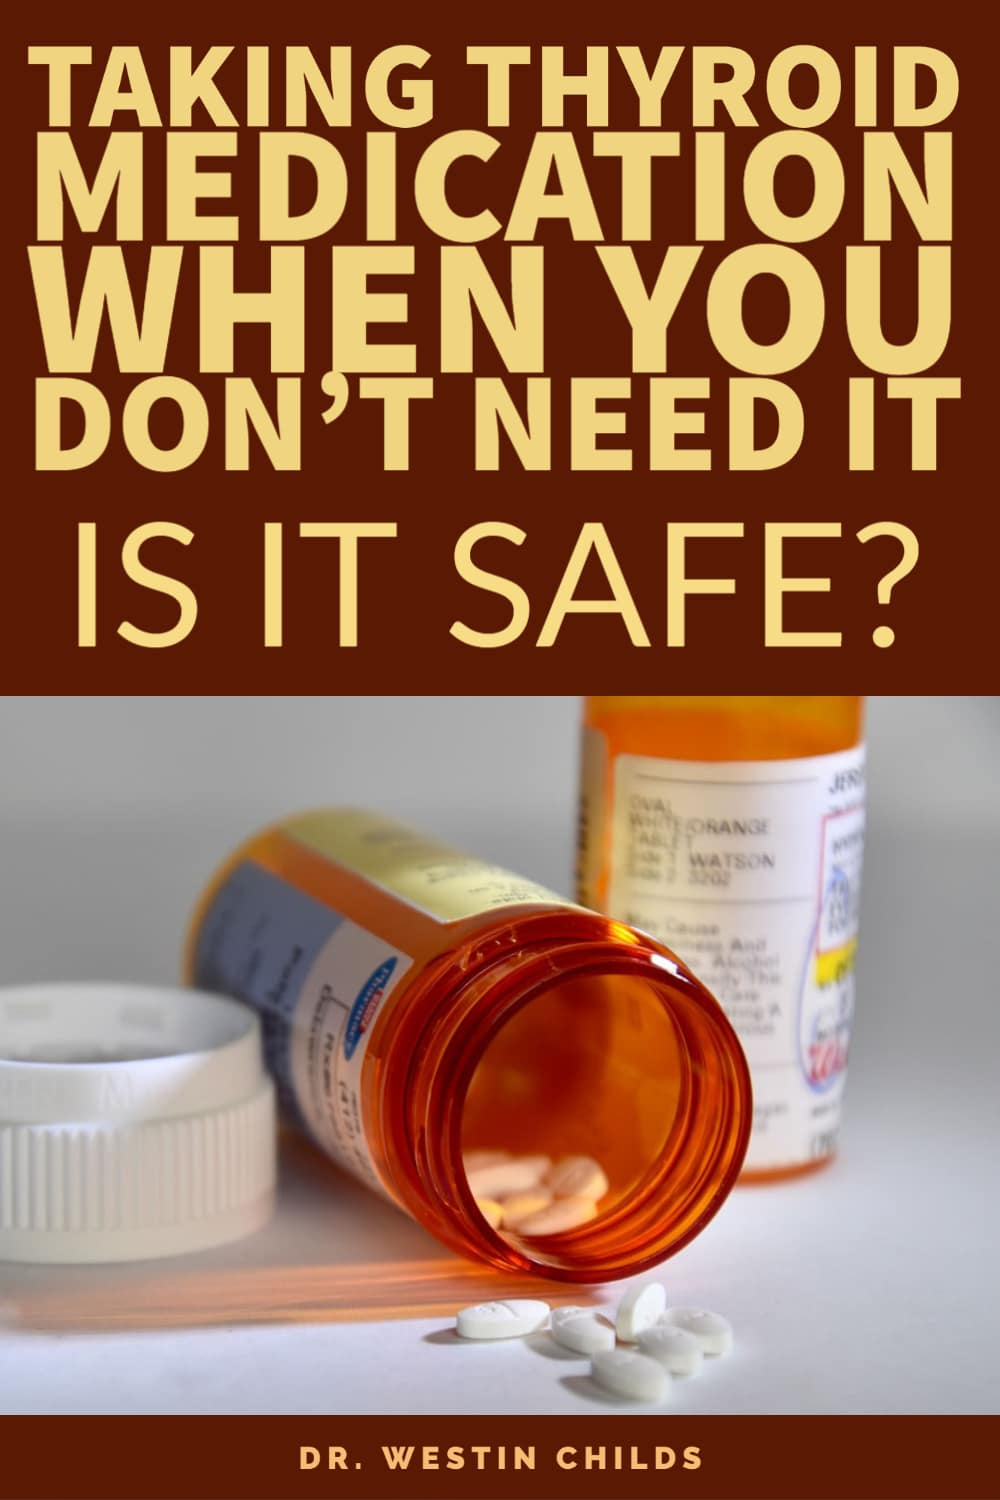 what happens if you take thyroid medication when you don't need it?